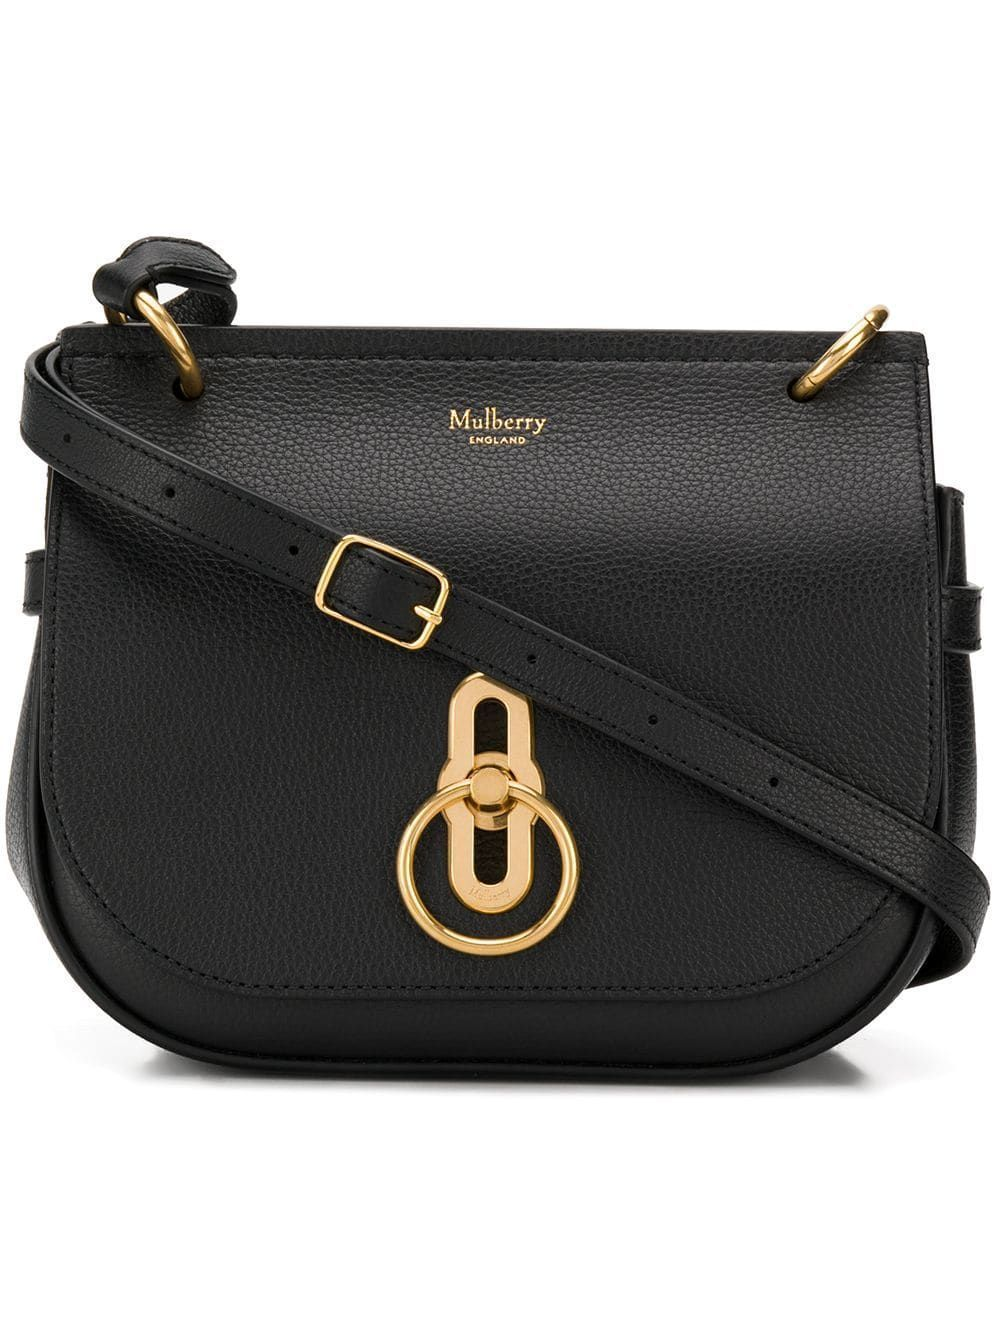 MULBERRY MULBERRY AMBERLEY SATCHEL SMALL - BLACK. #mulberry #bags #shoulder bags #hand bags #leather #satchel #mulberrybag MULBERRY MULBERRY AMBERLEY SATCHEL SMALL - BLACK. #mulberry #bags #shoulder bags #hand bags #leather #satchel #mulberrybag MULBERRY MULBERRY AMBERLEY SATCHEL SMALL - BLACK. #mulberry #bags #shoulder bags #hand bags #leather #satchel #mulberrybag MULBERRY MULBERRY AMBERLEY SATCHEL SMALL - BLACK. #mulberry #bags #shoulder bags #hand bags #leather #satchel #mulberrybag MULBERRY #mulberrybag